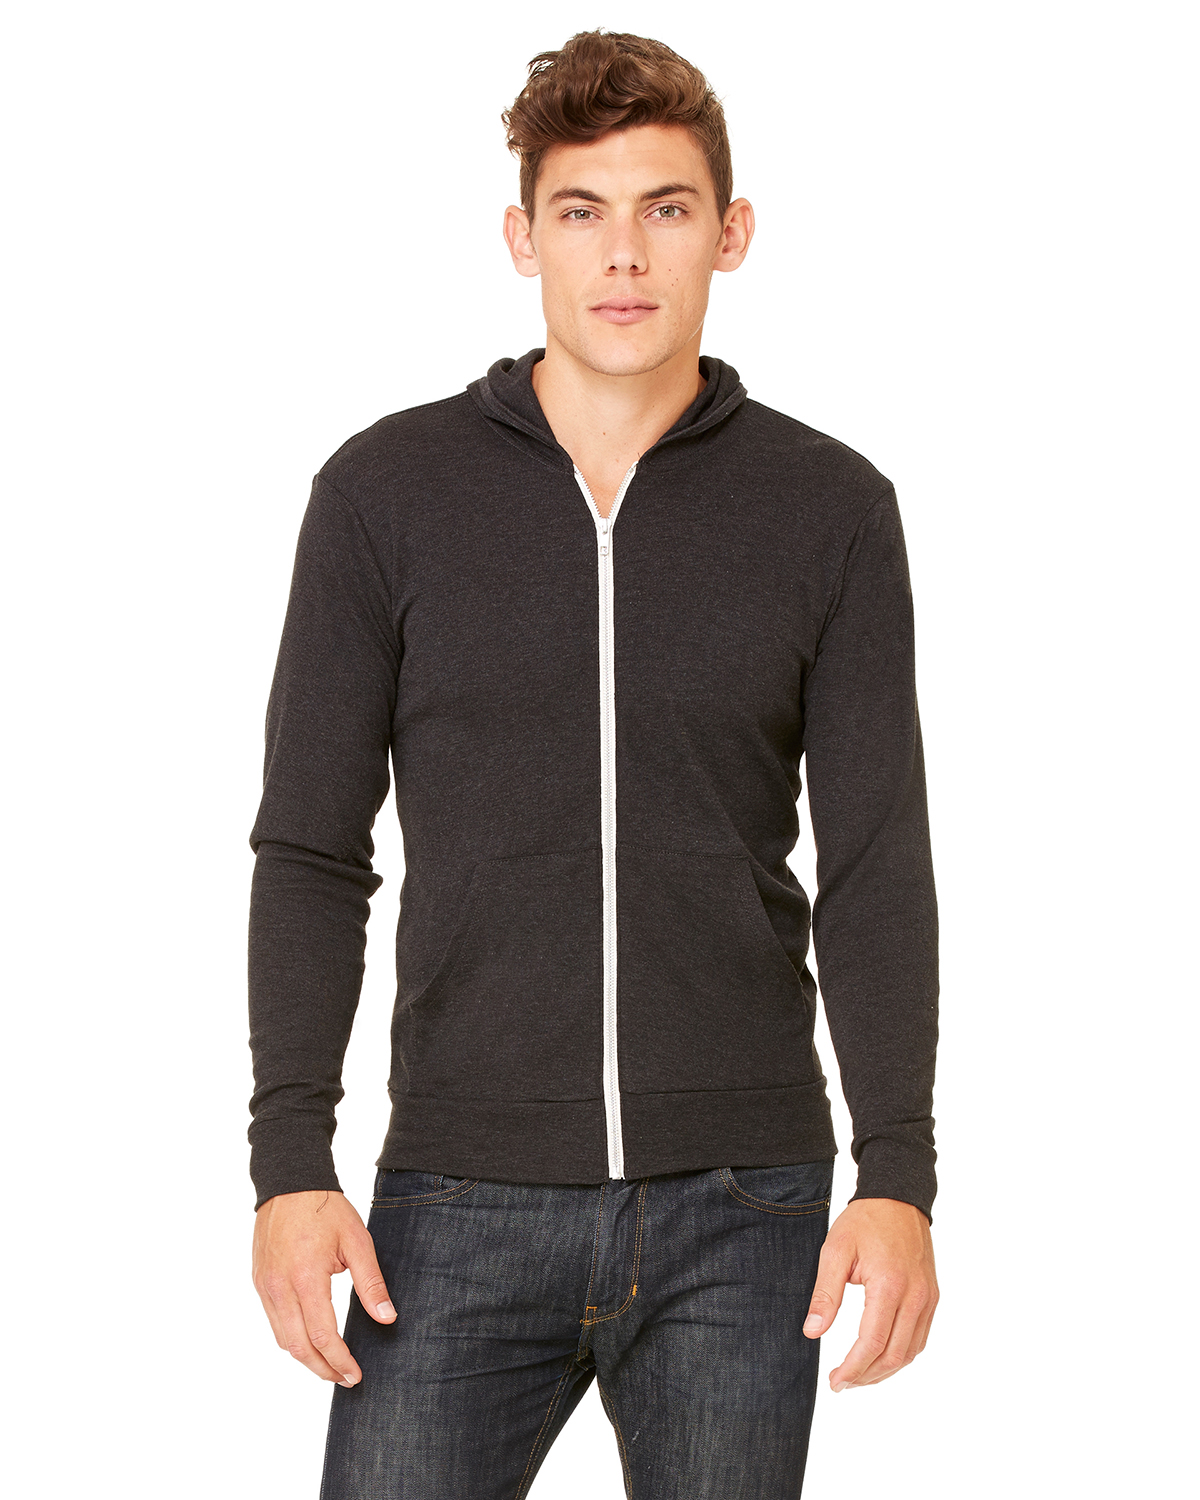 Bella + Canvas 3939 - Unisex Triblend Full-Zip Lightweight ...